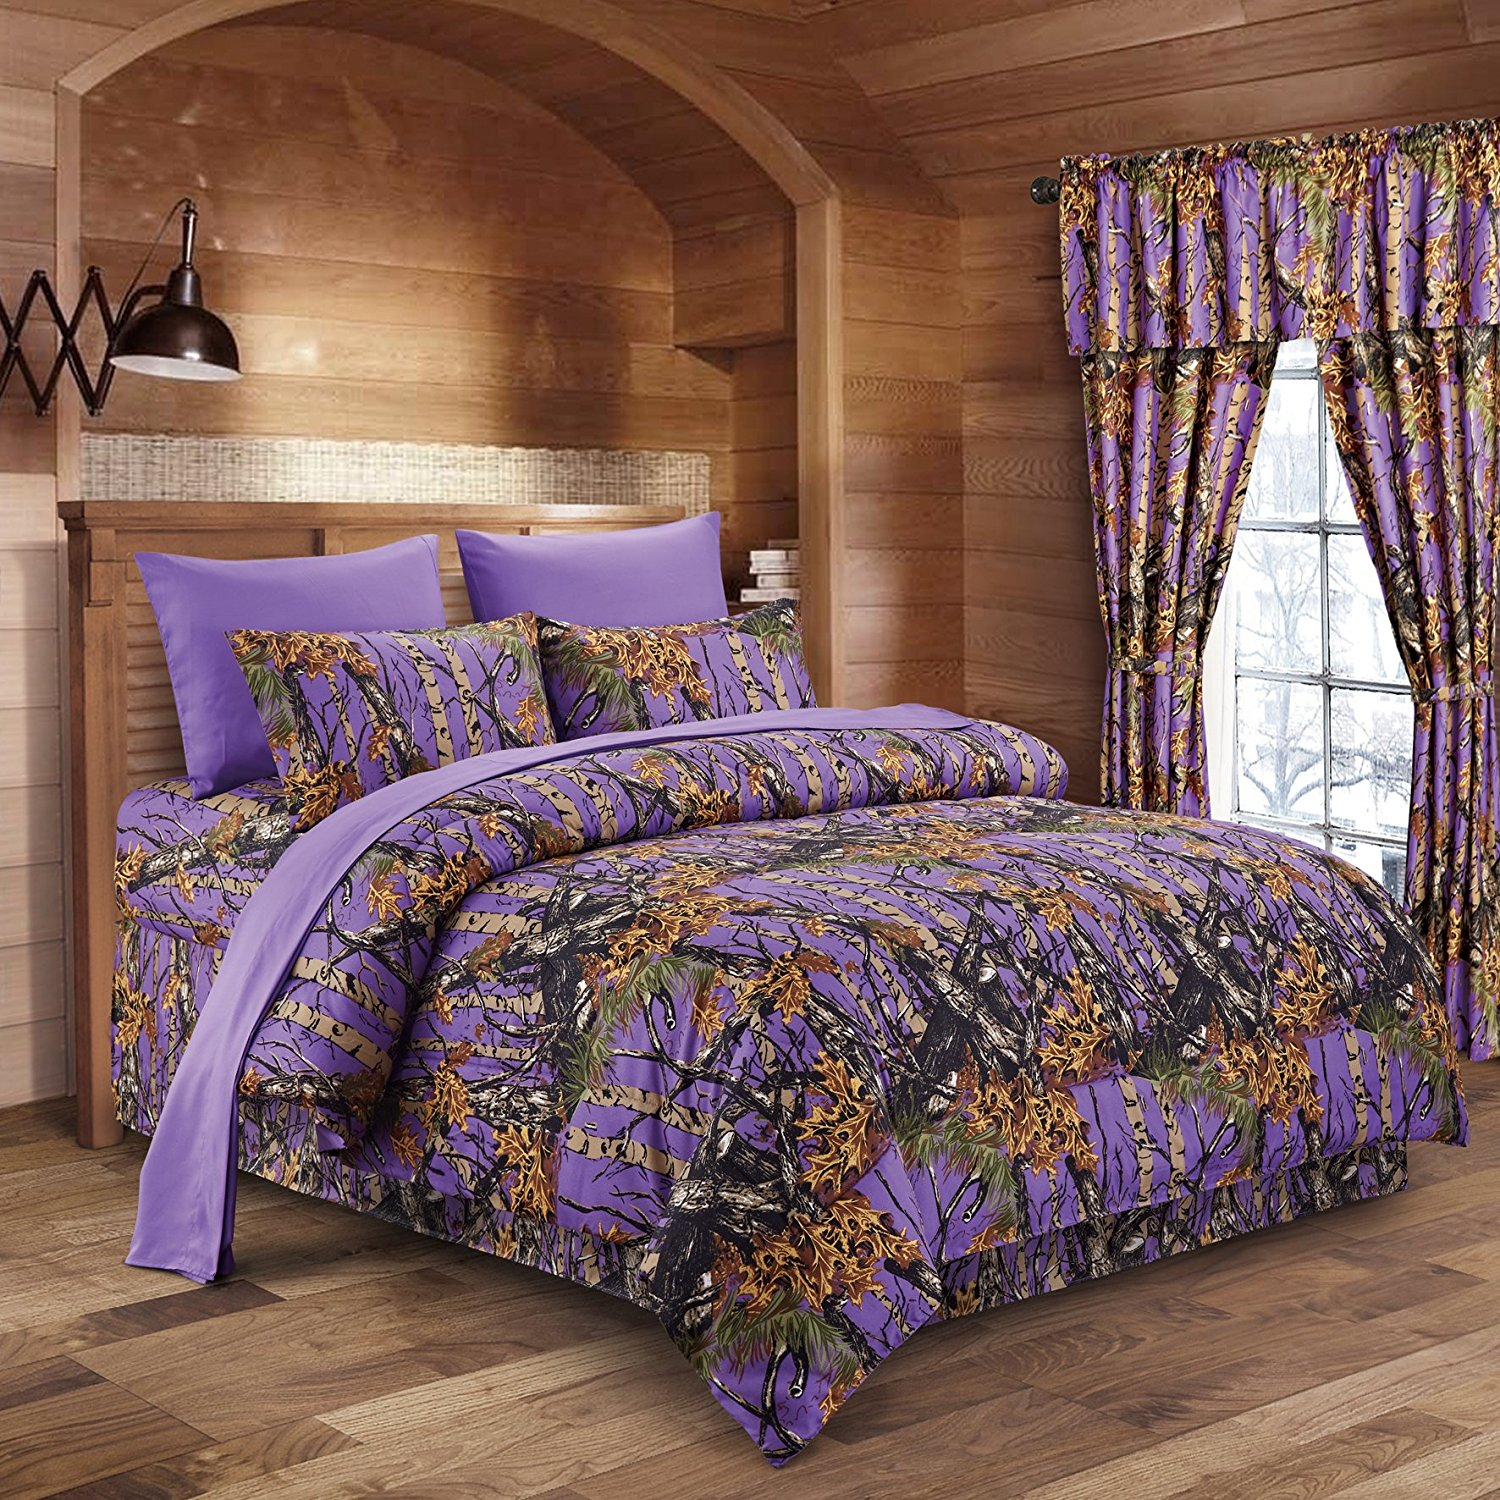 Regal Comfort 8pc Queen Size Woods Purple Camouflage Premium Comforter, SHeet, Pillowcases, and Bedskirt Set... by Regal Comfort